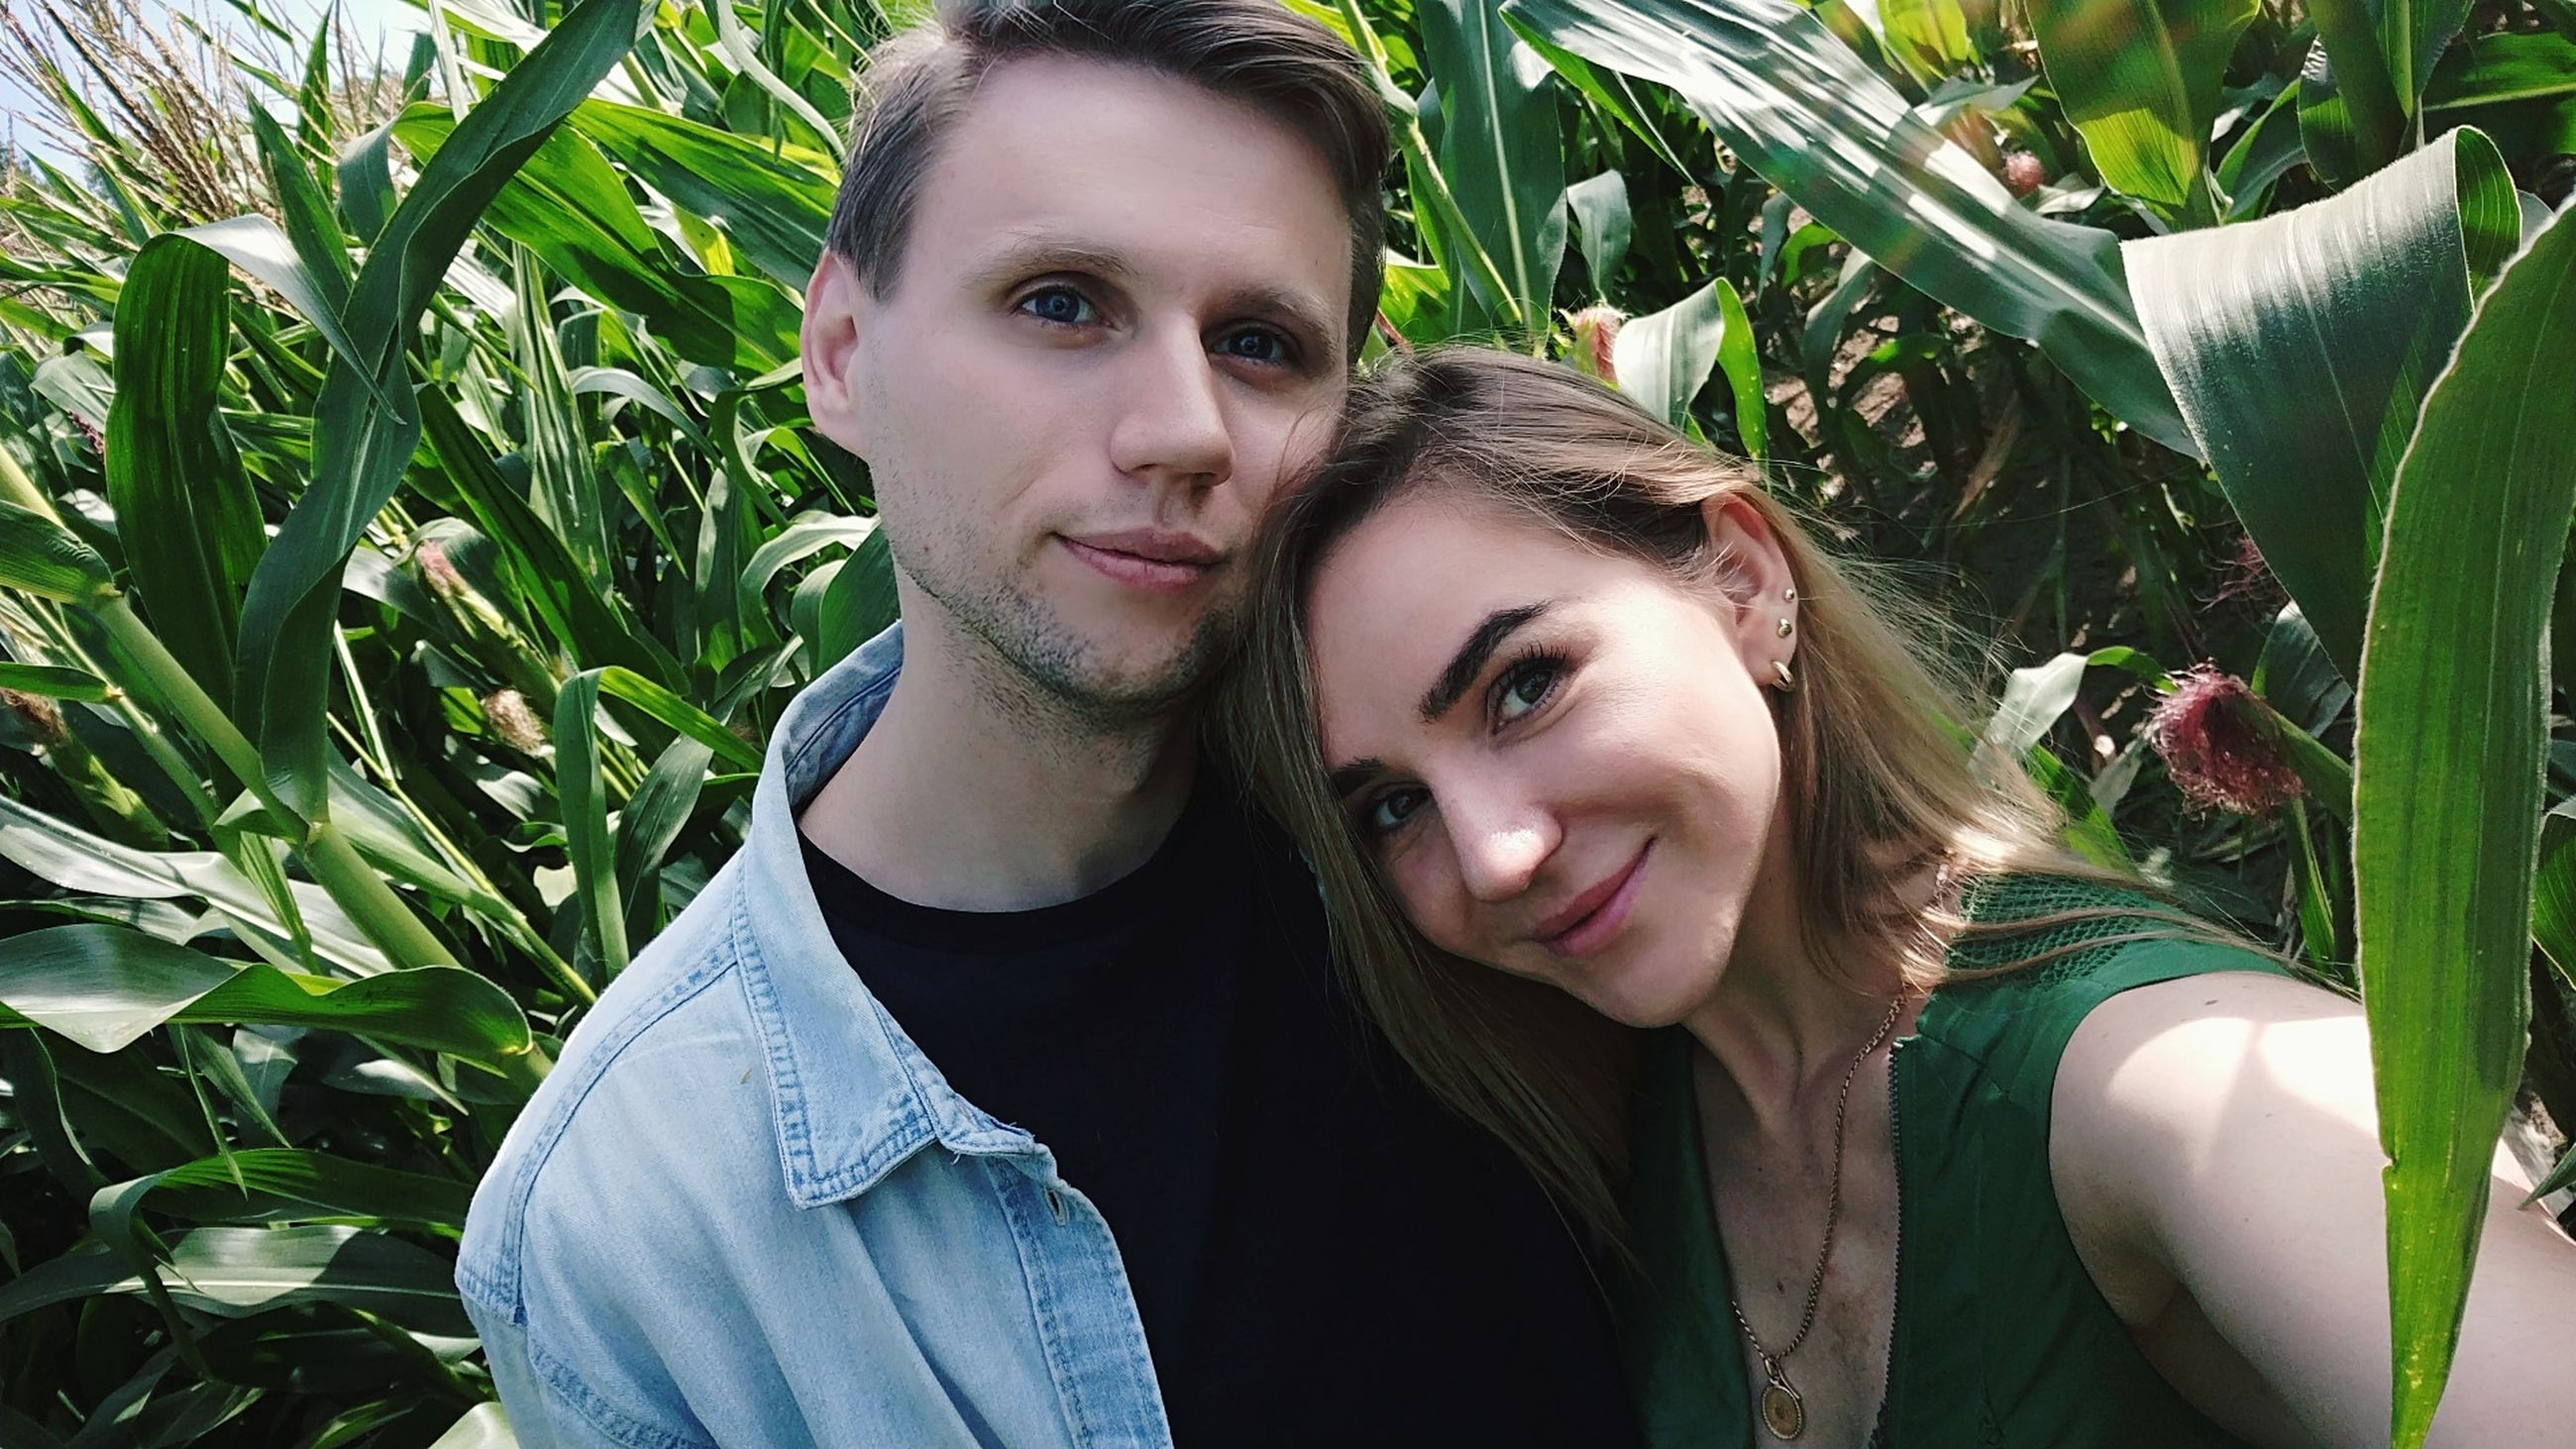 portrait, two people, looking at camera, young adult, young women, plant, smiling, adult, lifestyles, leisure activity, emotion, bonding, headshot, togetherness, young men, women, front view, real people, couple - relationship, positive emotion, beautiful woman, outdoors